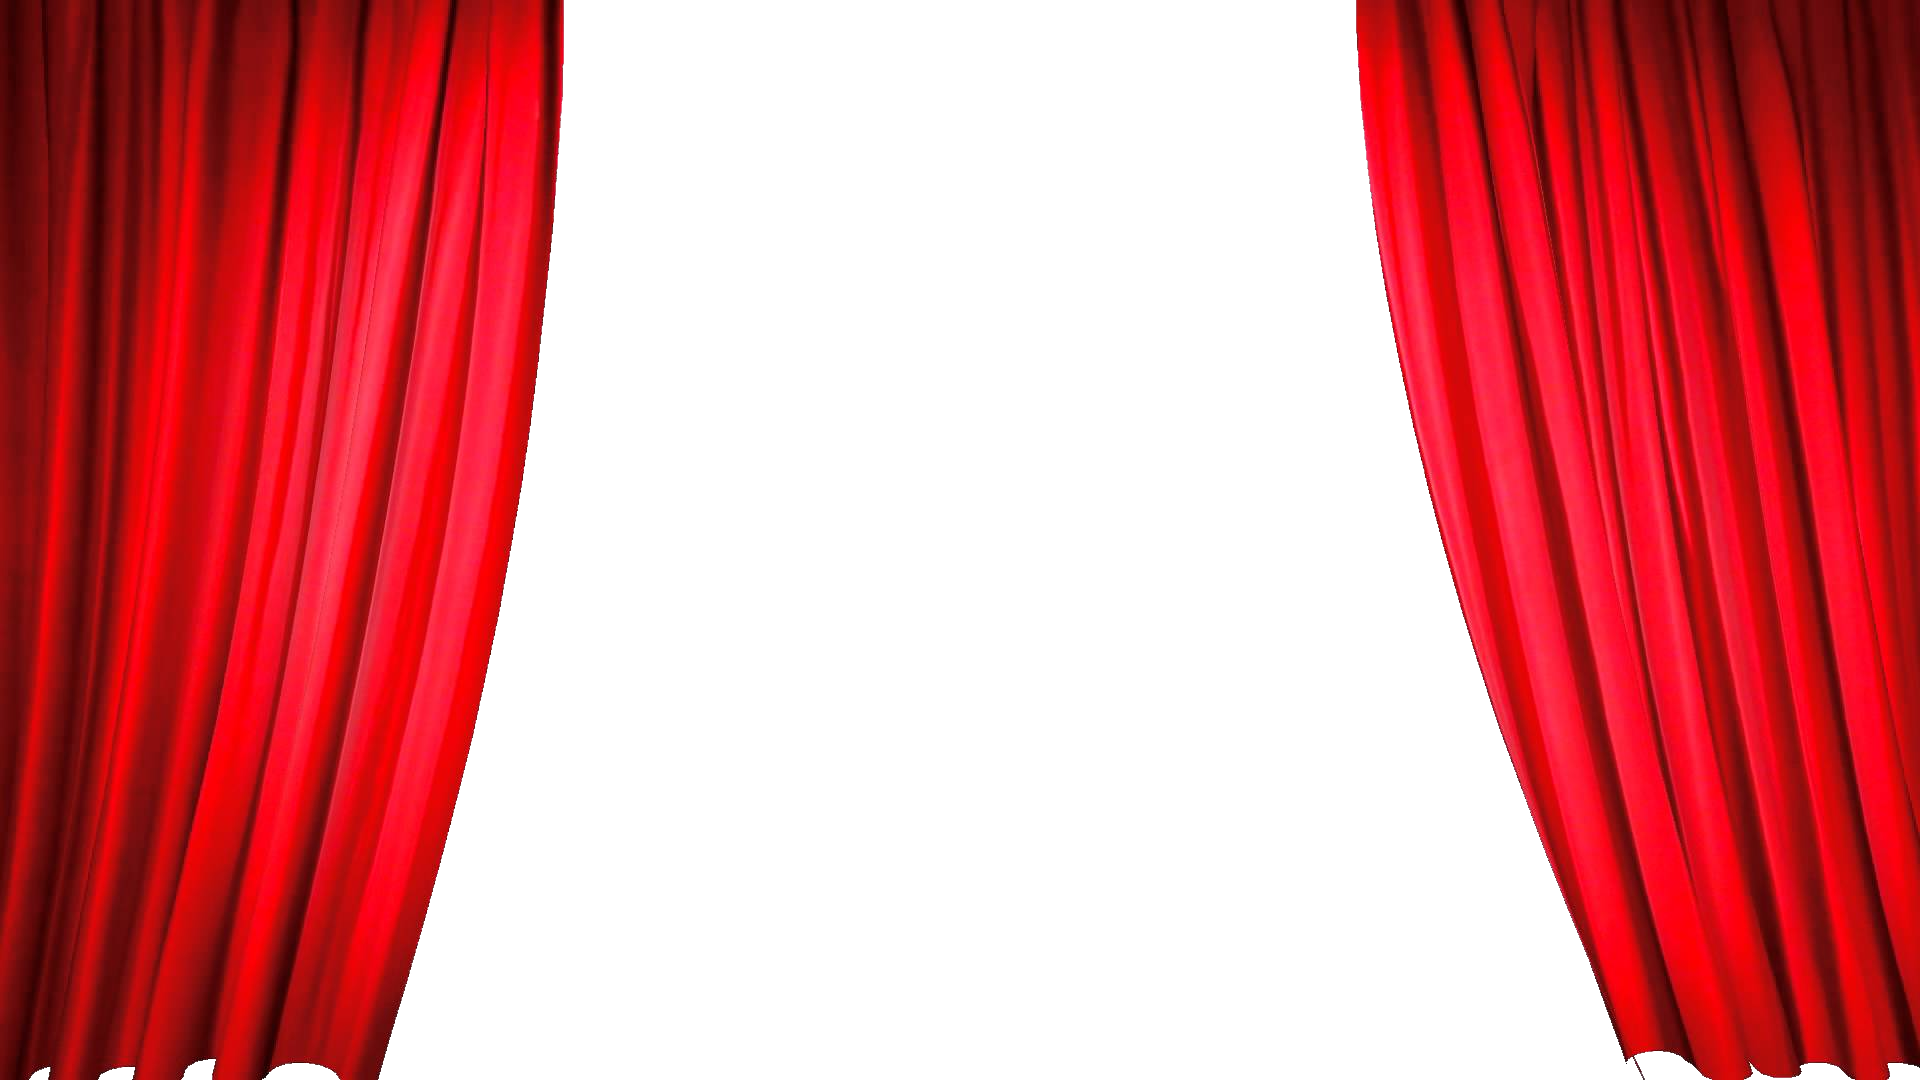 Curtains PNG images free download.